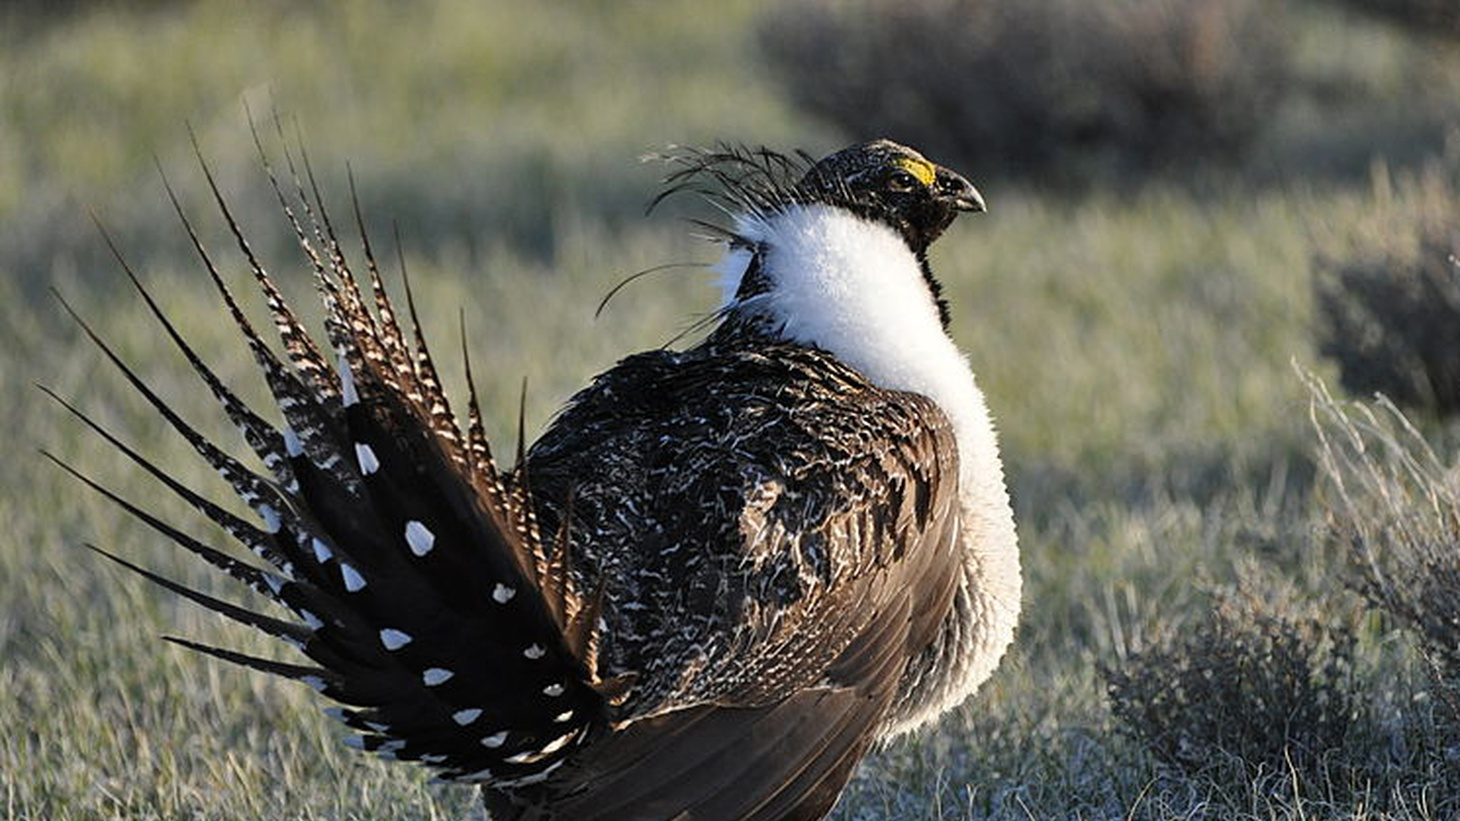 Photo by Jeannie Stafford/US Fish & Wildlife Service 